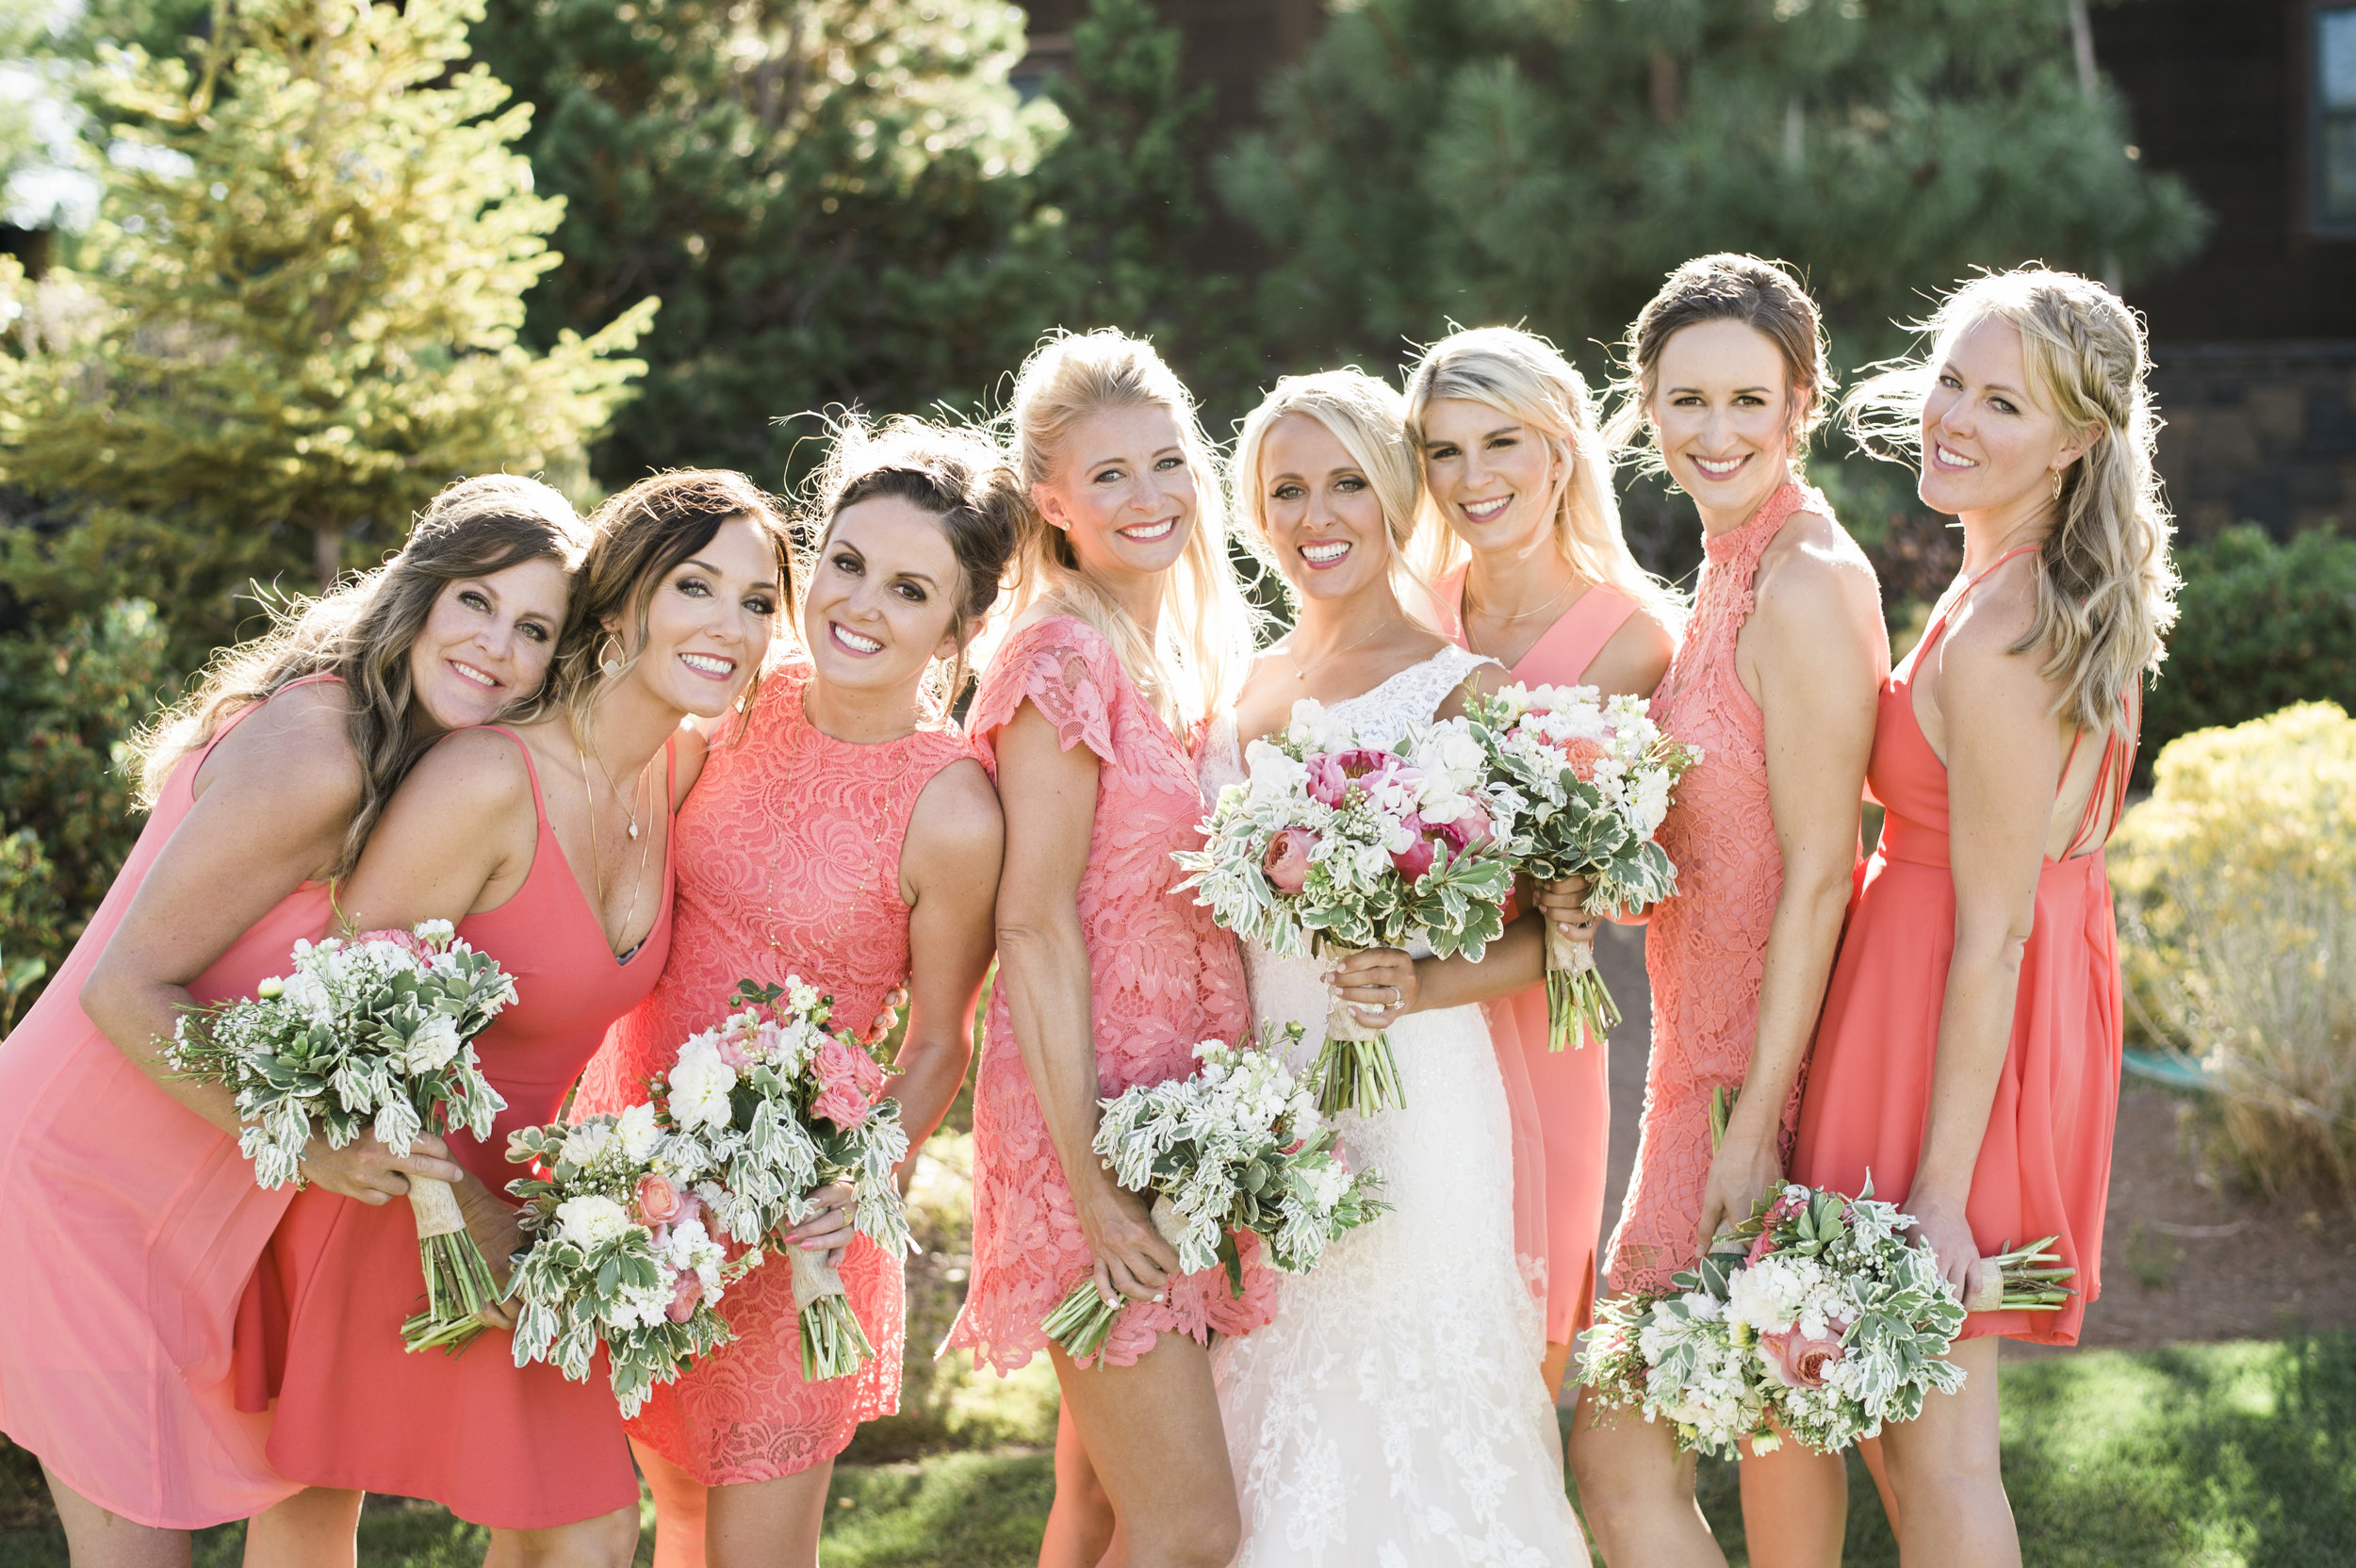 Bridalbliss.com | Portland Wedding | Oregon Event Planning and Design | Kimberly Kay Photography